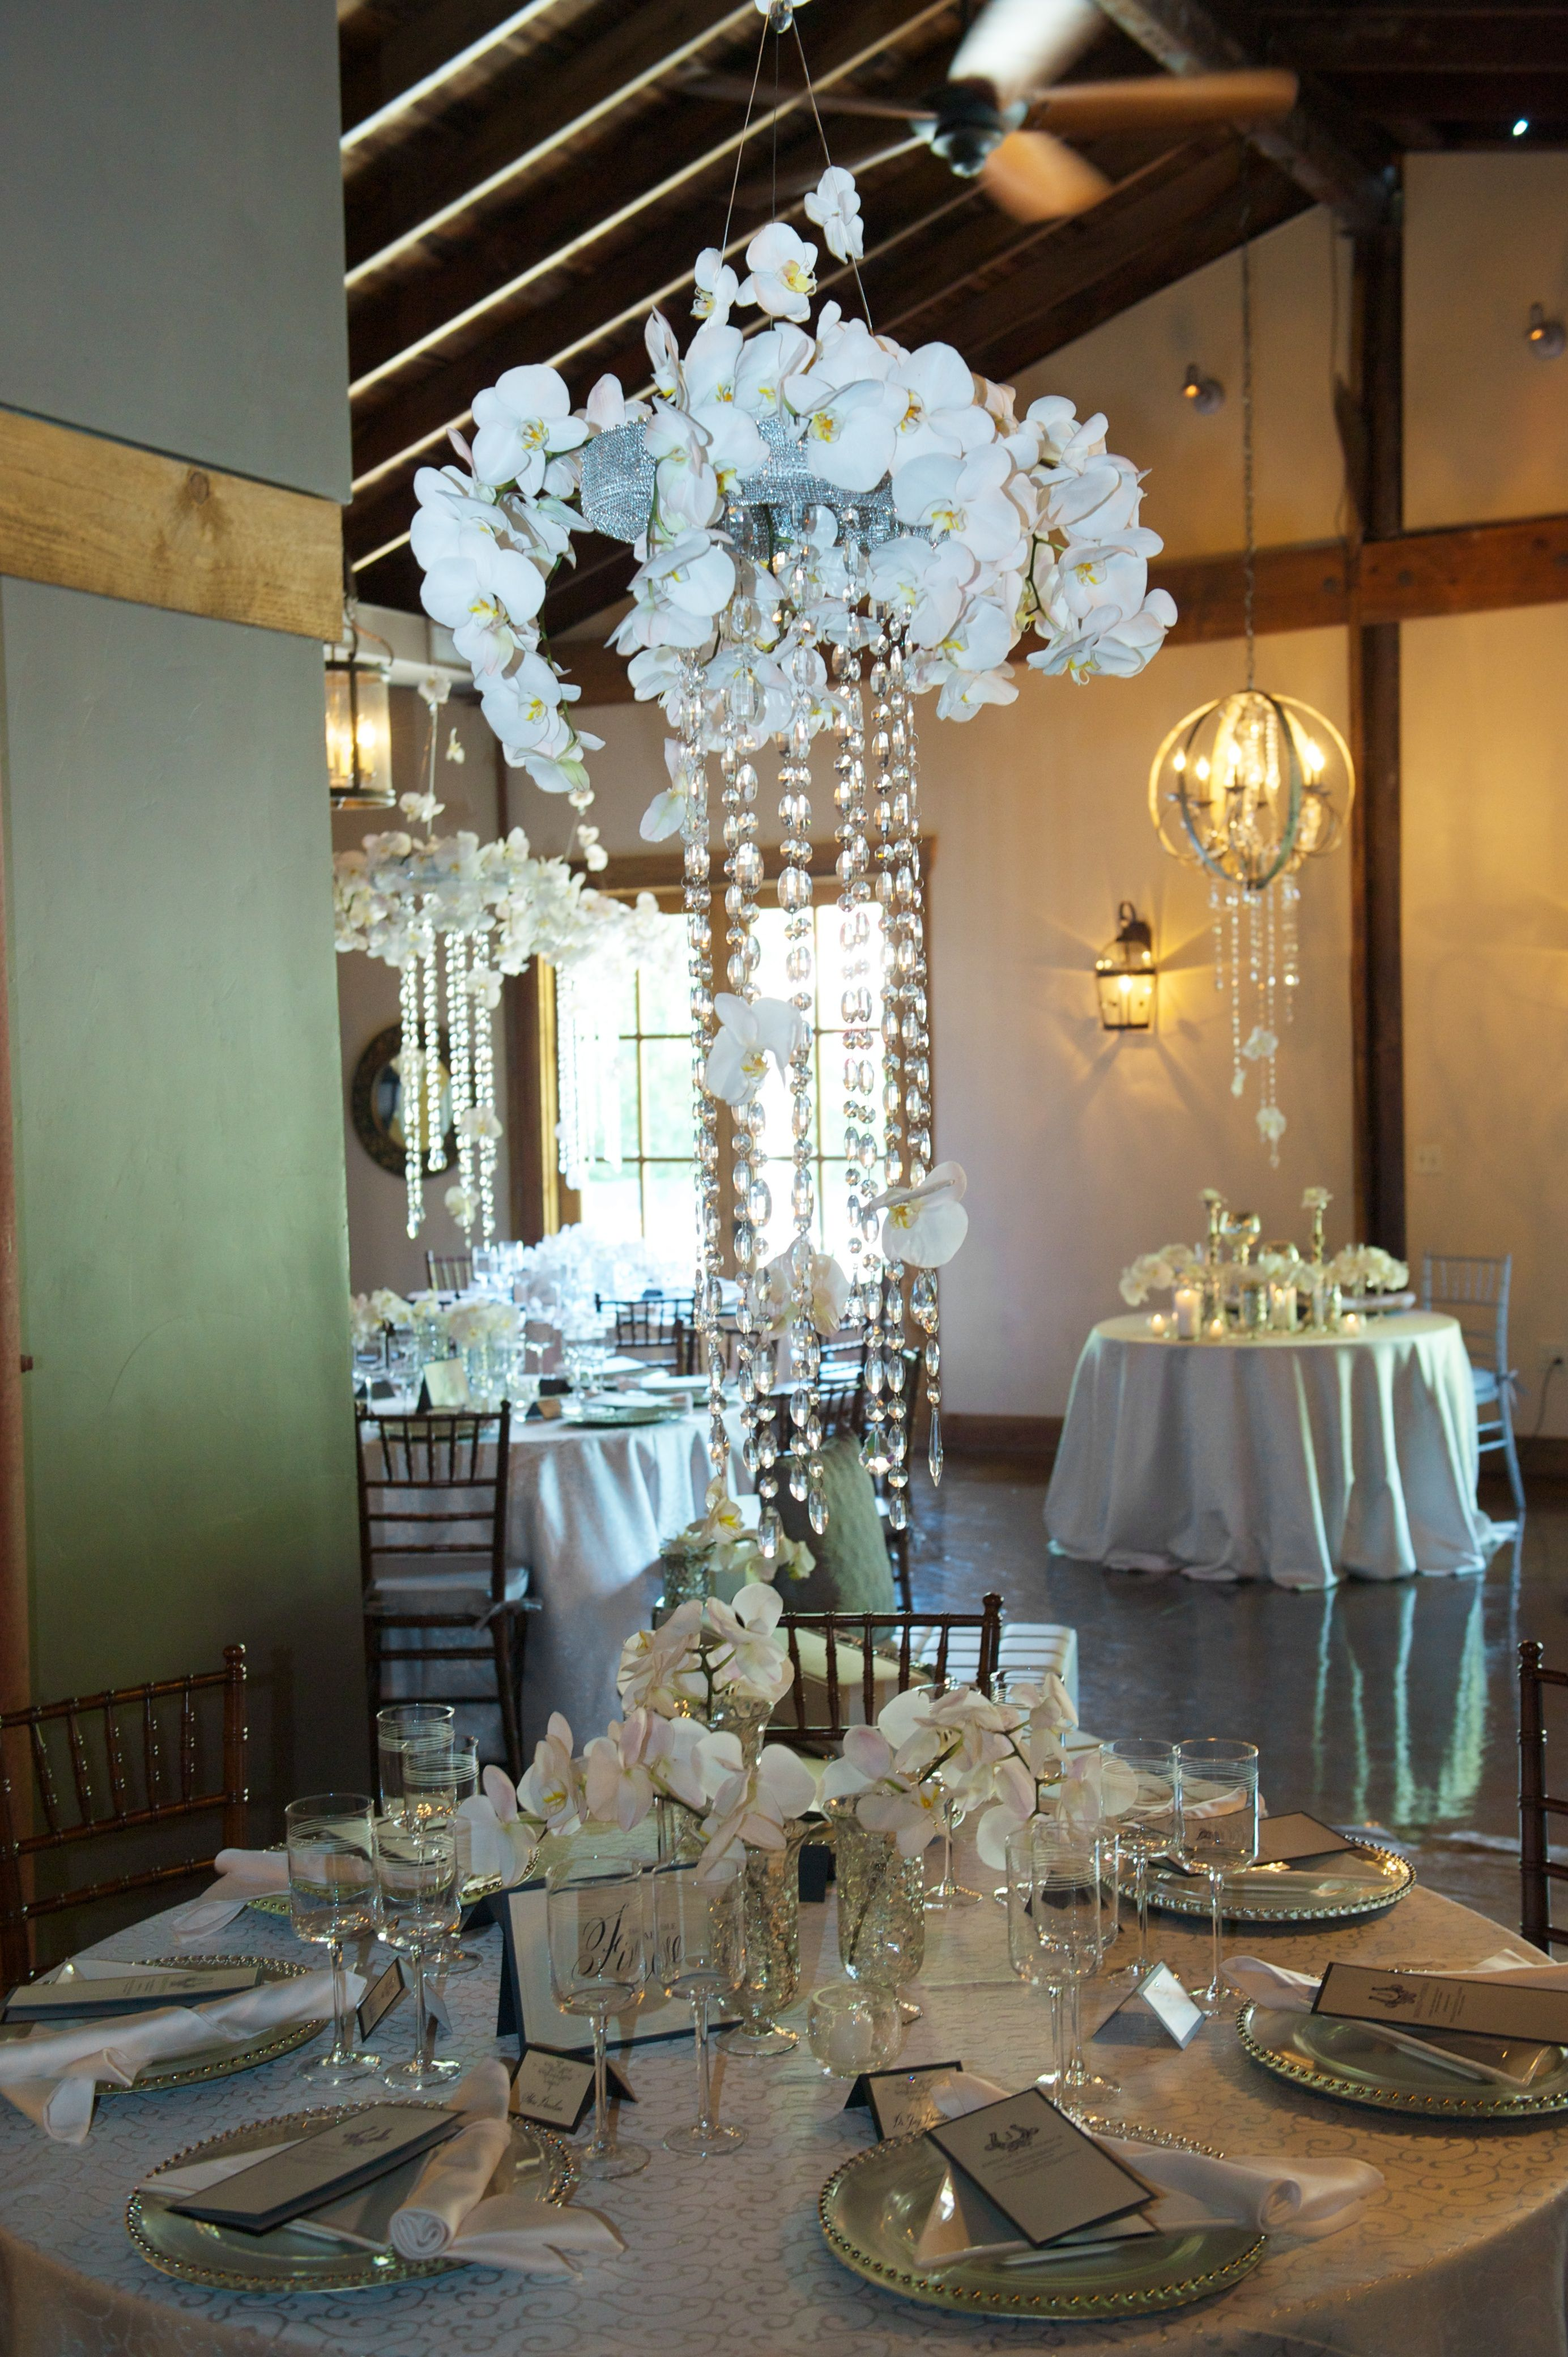 Elegant Floral Chandeliers Hang In The Red Horse Barn Florals By Visual Impact Design Photo By Sharpe W Garland Wedding Floral Chandelier Wedding Decorations